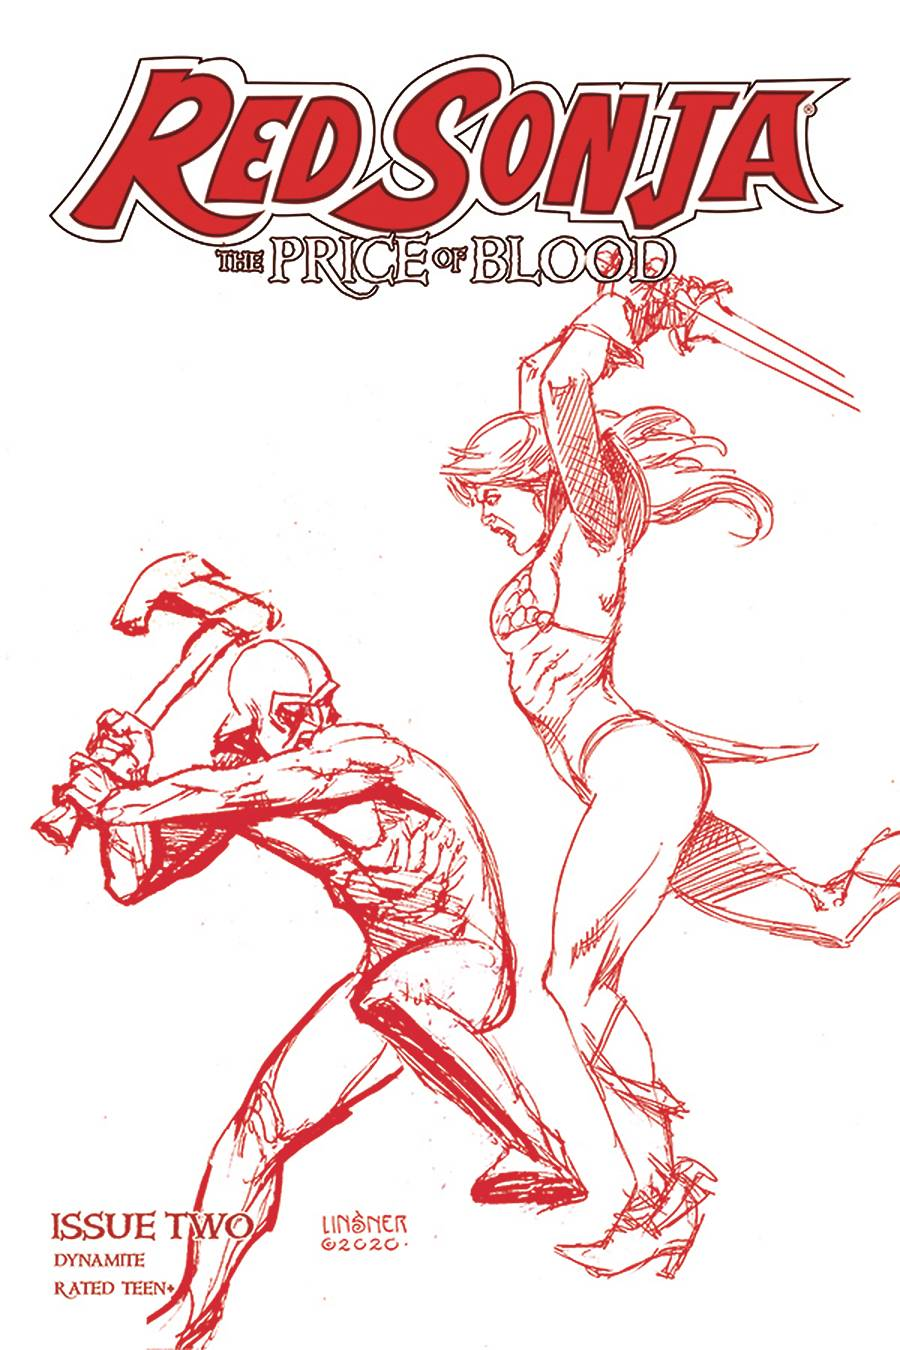 RED SONJA PRICE OF BLOOD #2 LINSNER CRIMSON RED LINE ART CVR